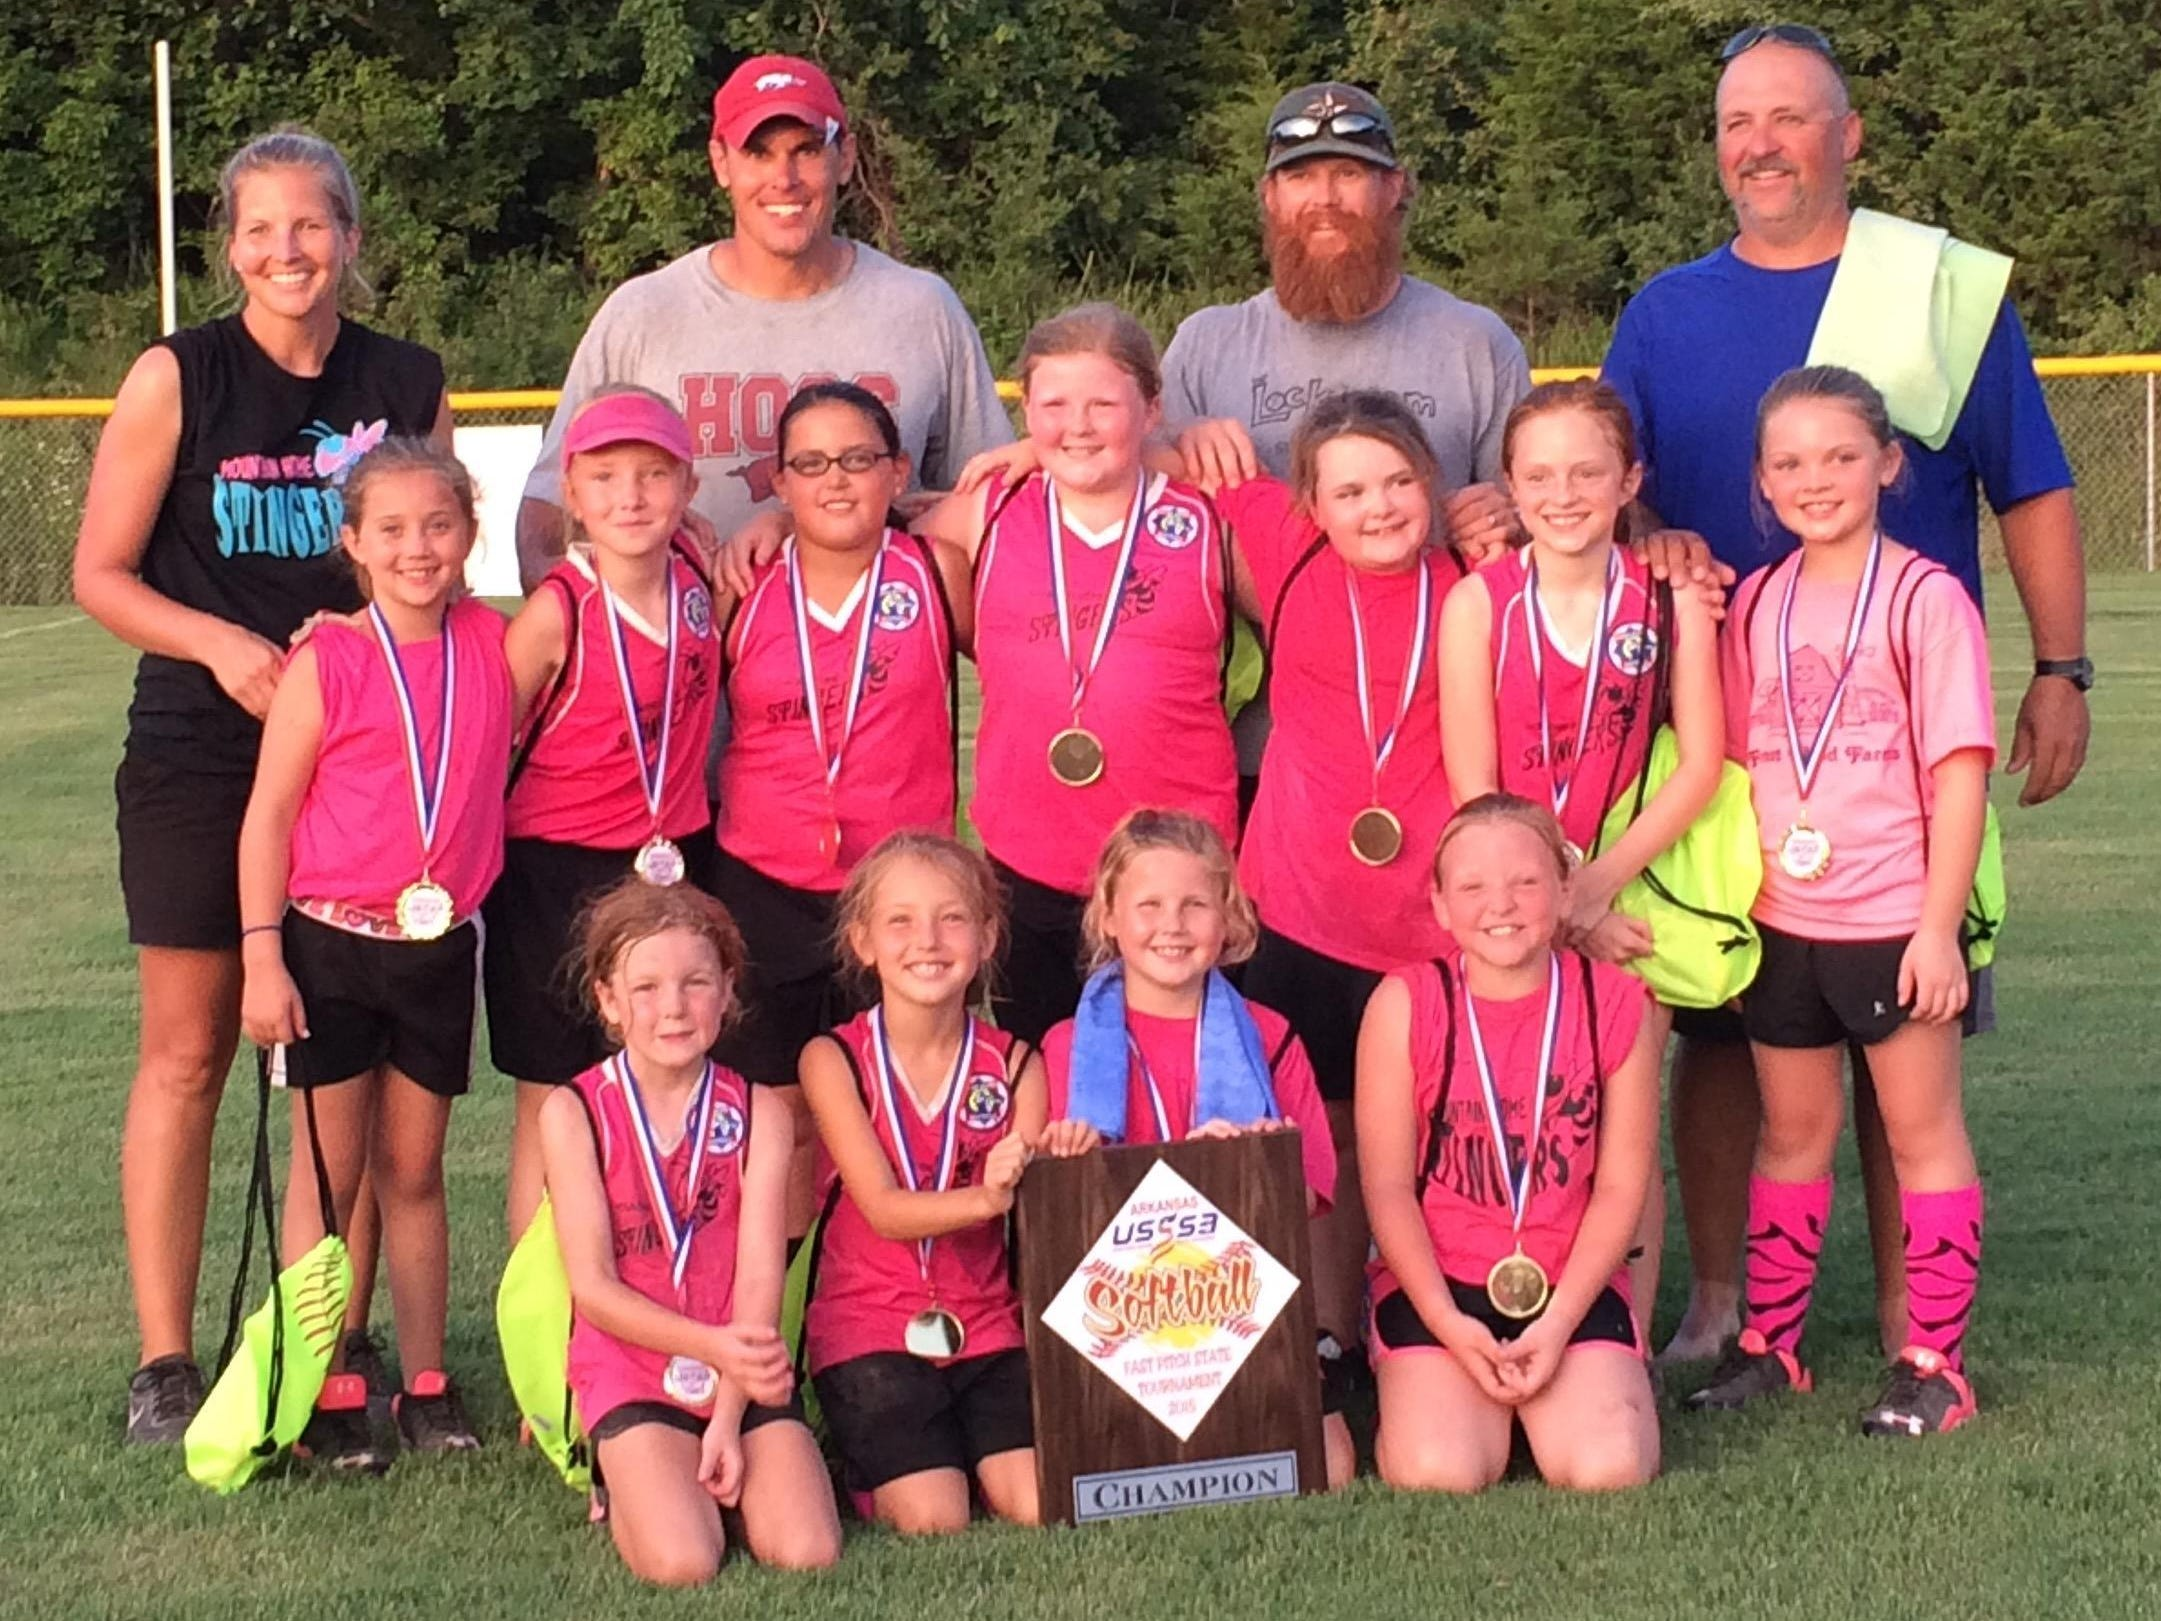 The Stingers, a Twin Lakes Youth Softball team, won the USSSA 8-and-under state championship Saturday at Keller Park. The Stingers came out of the loser's bracket to defeat Tri-County in the championship. Team members are: first row, from left, Jayla Yonkers, Emma Sanborn, Colby Hardin, Kiersten Kennedy; second row, Kinley Clayborn, Brooklyn Arms, Allison Payne, Carly Hardin, Abby King, Ashley McKanna, Adrianne Benedict; third row, coaches Morgan Hardin, Richard Payne, Shawn Hardin and Brian Arms.